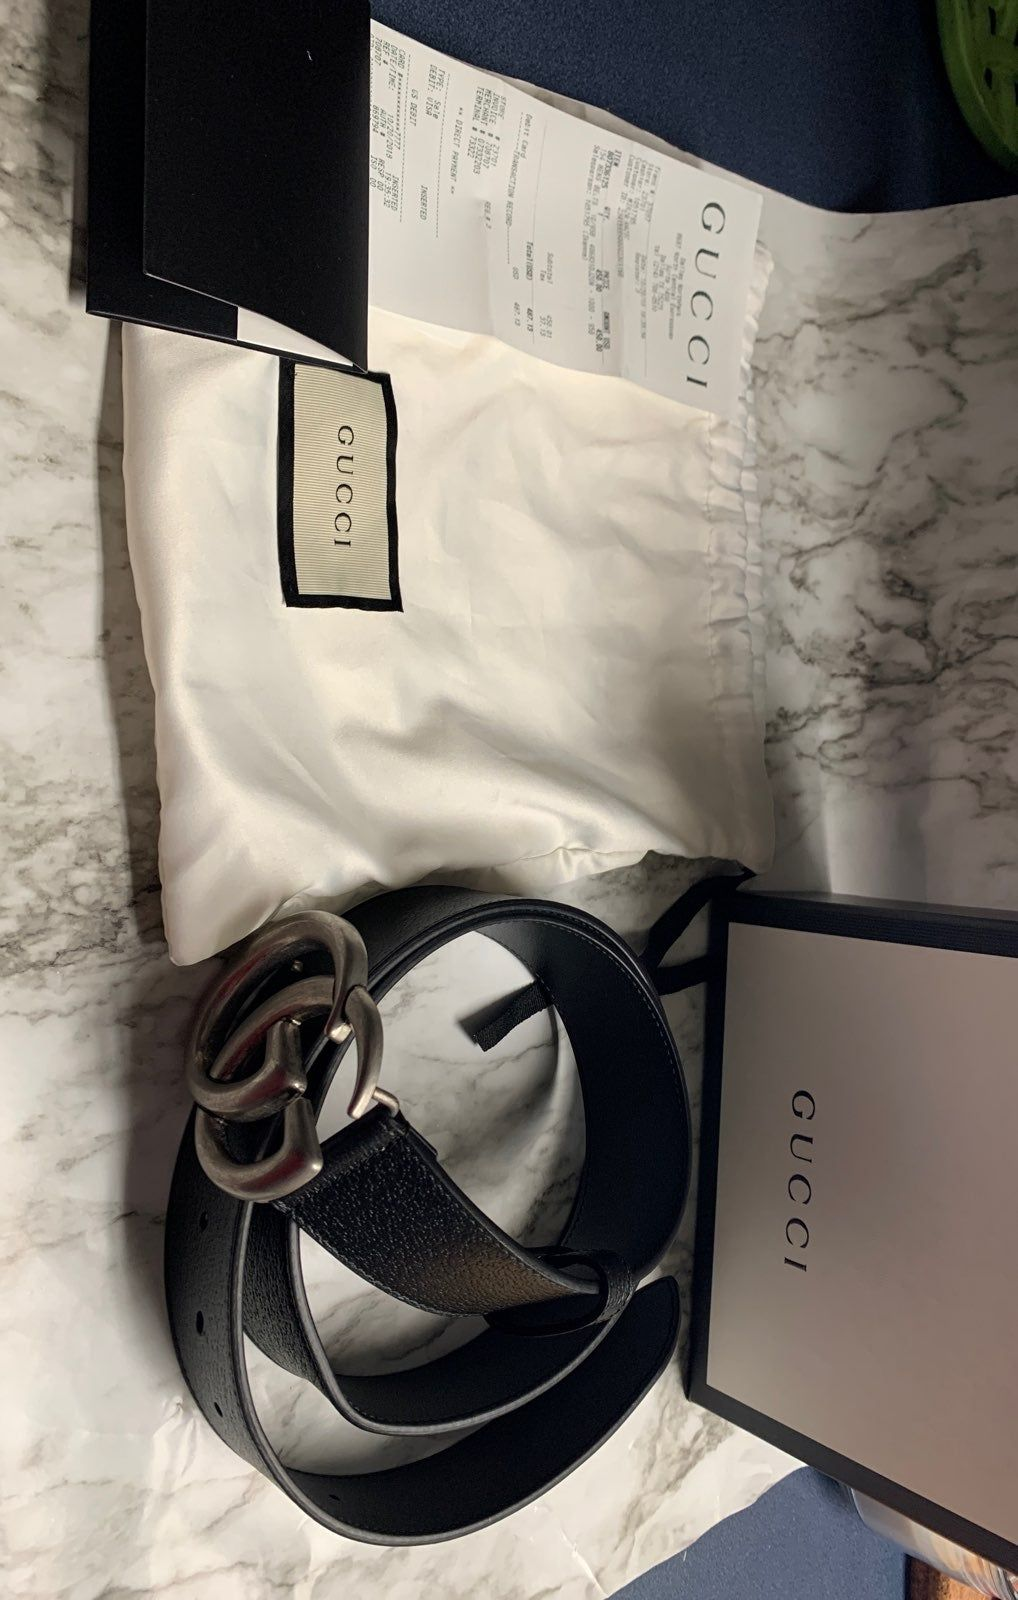 Authentic gucci belt like new with tags and a receipt to